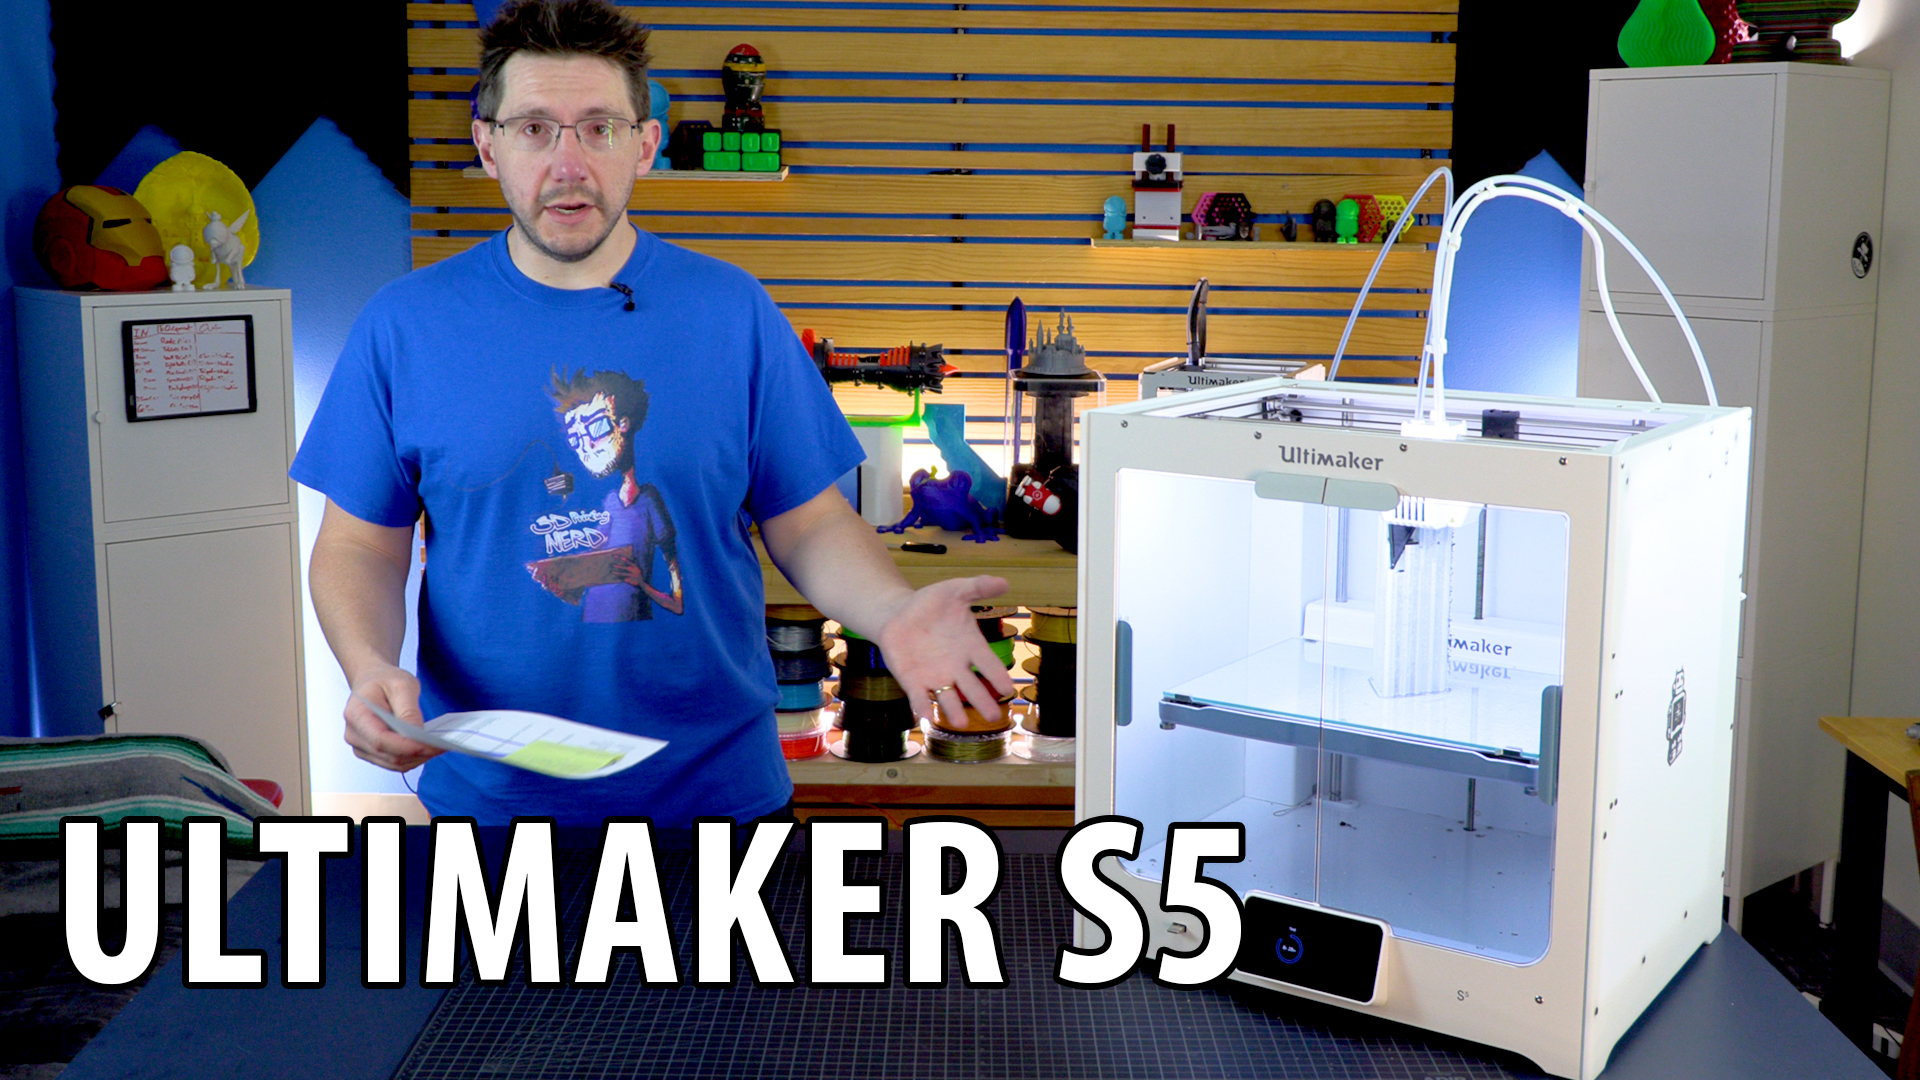 First Look at the Ultimaker S5 3D Printer Thanks to Matterhackers